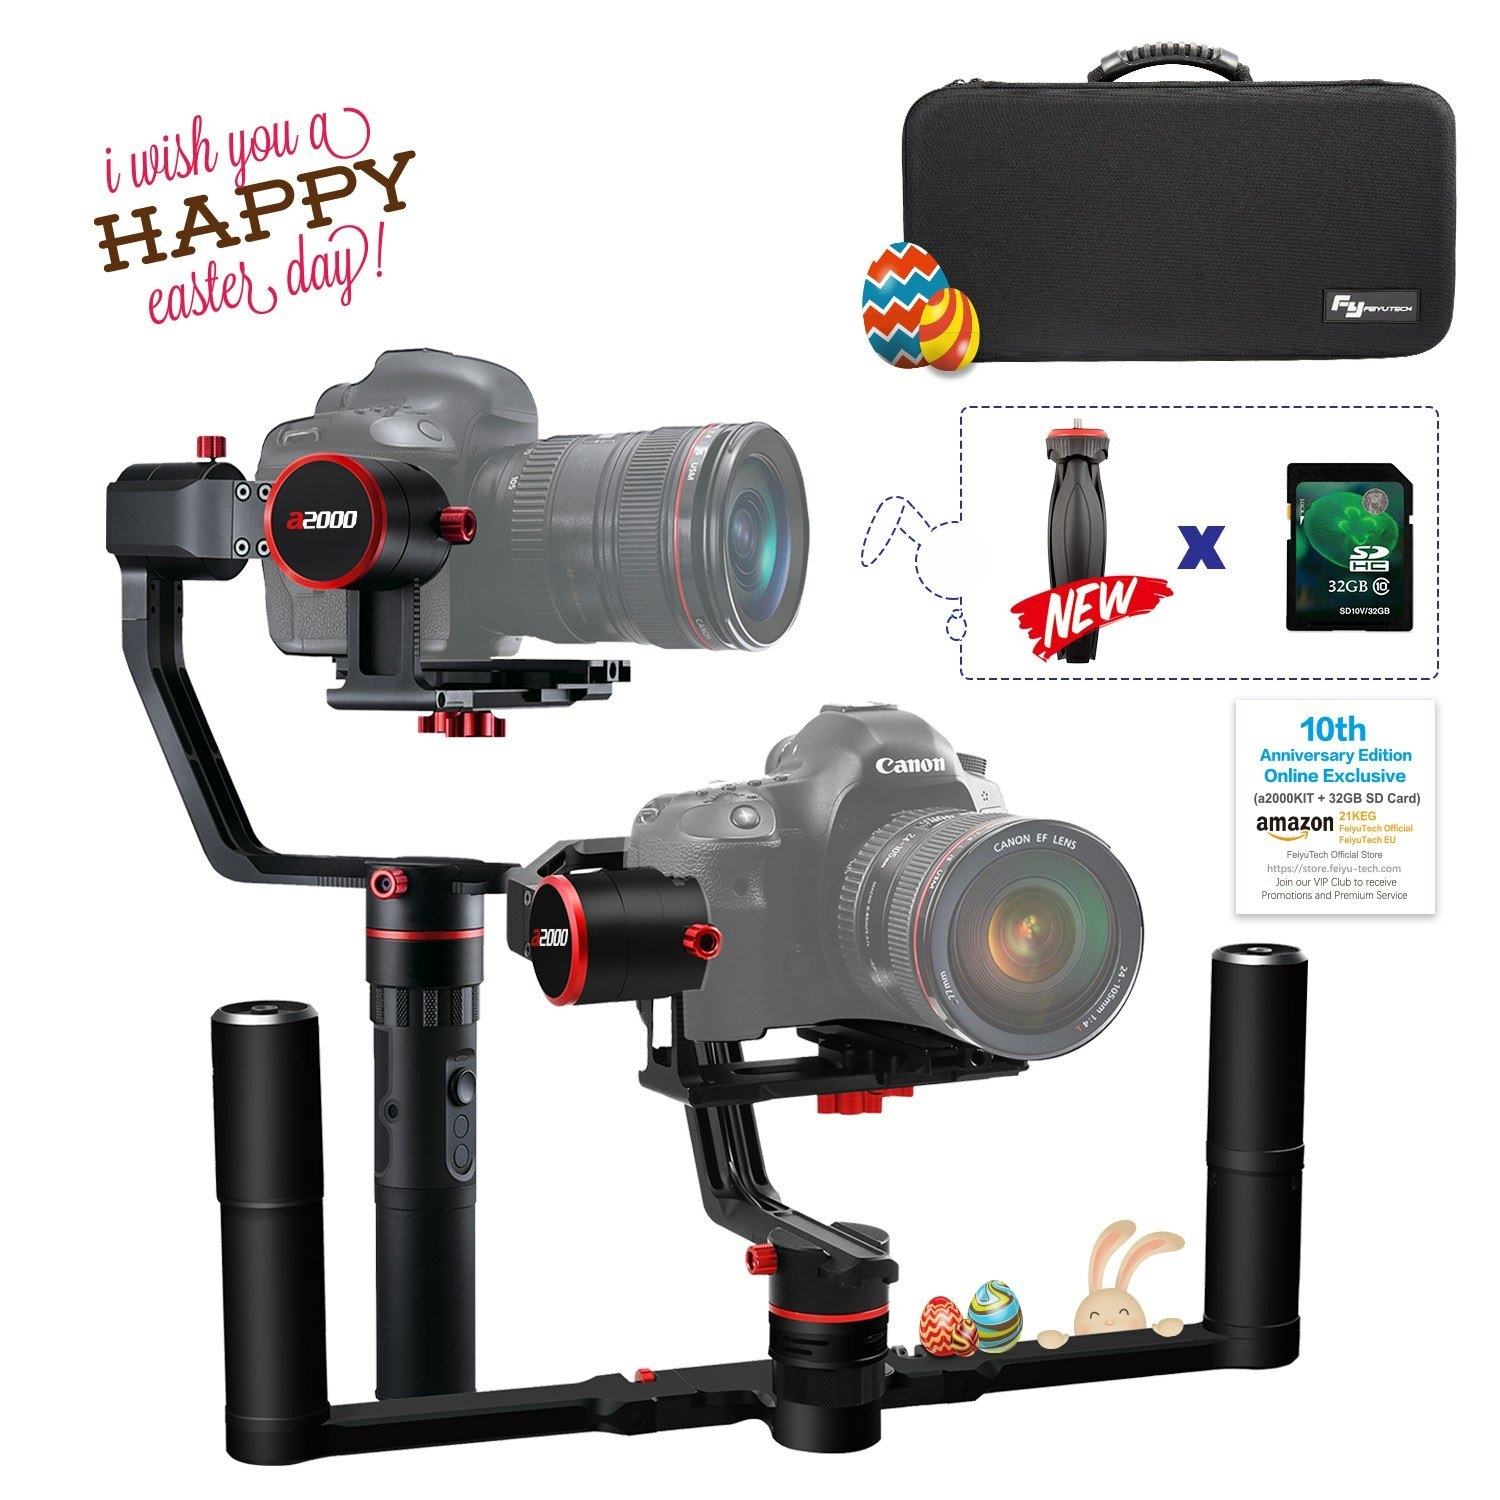 FeiyuTech a2000(10th Anniversary Edition) Dual Grip Handle Kit for DSLR Camera, Foldable Handle,Compatible with NIKON/SONY/CANON Series Camera and lens, ,2 Kilogram Payload, Damping Sliding Arm